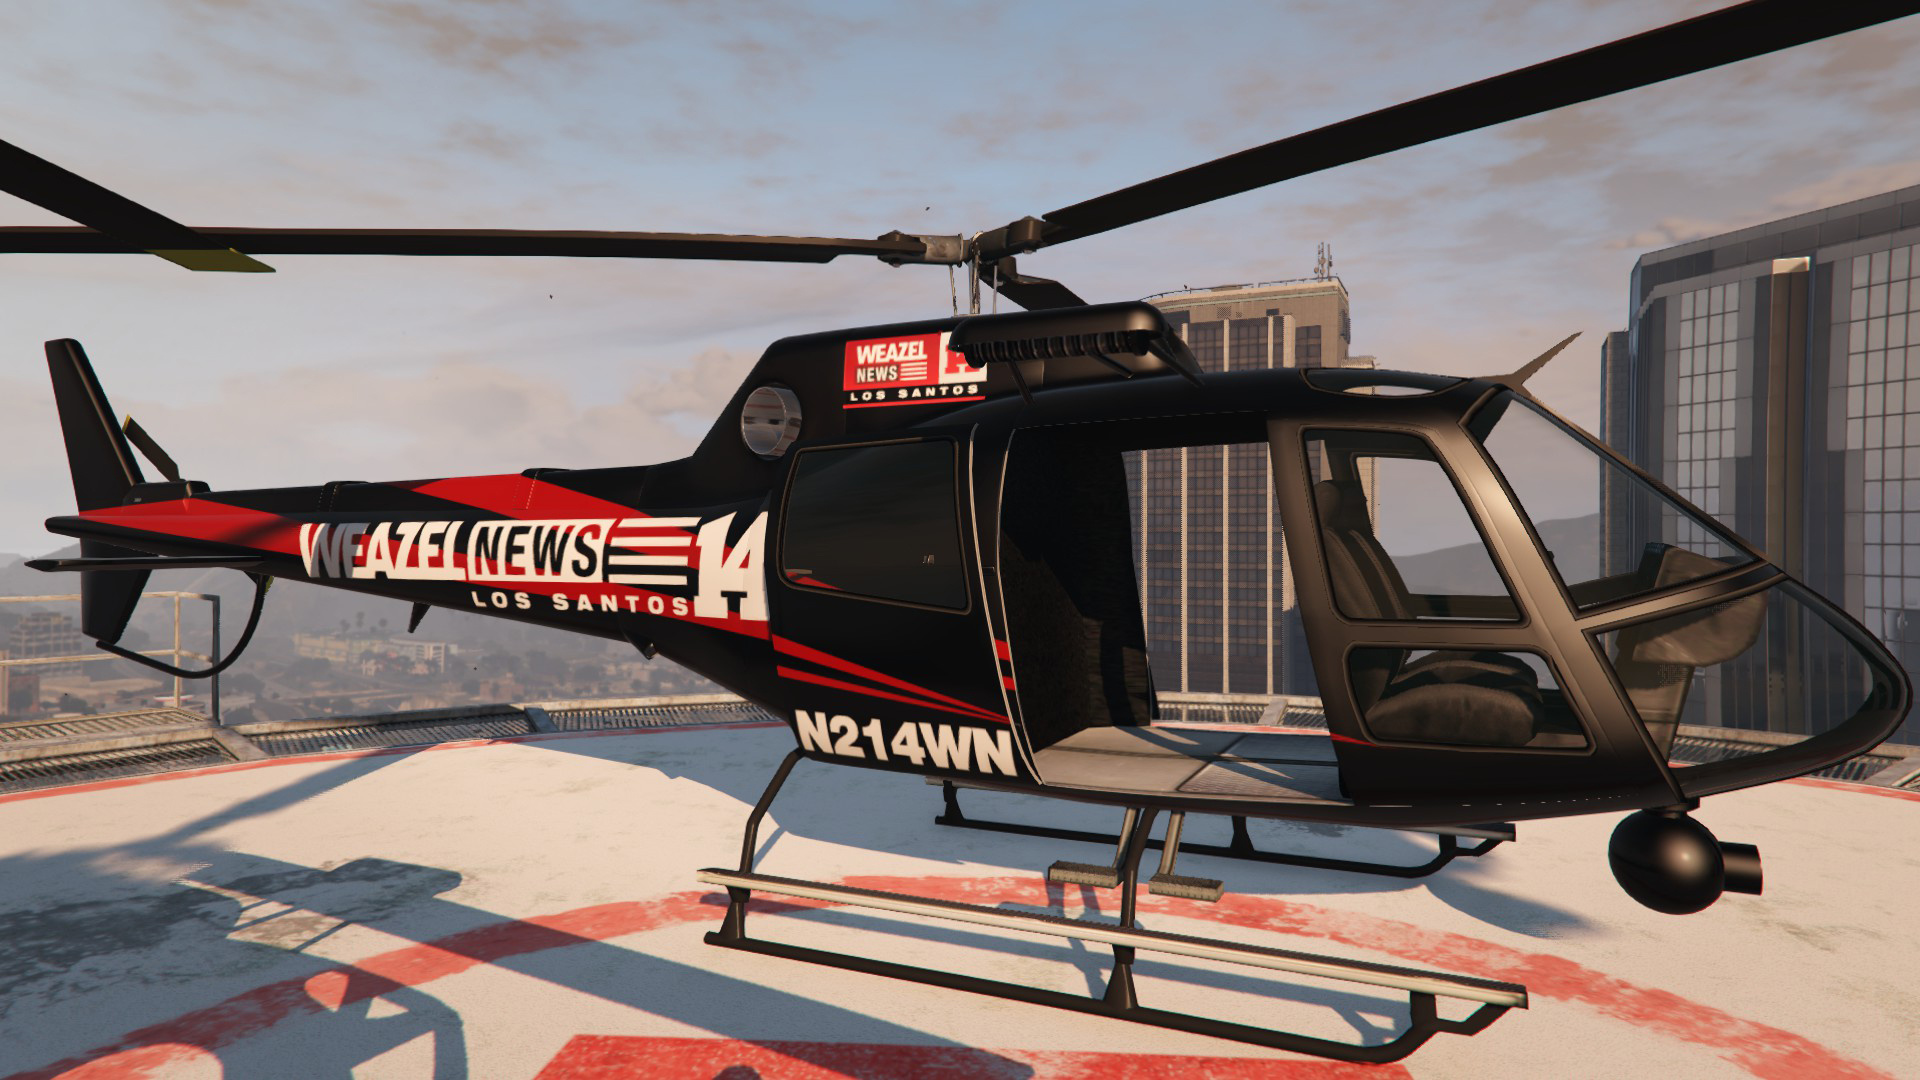 news chopper skins lore friendly gta5. Black Bedroom Furniture Sets. Home Design Ideas